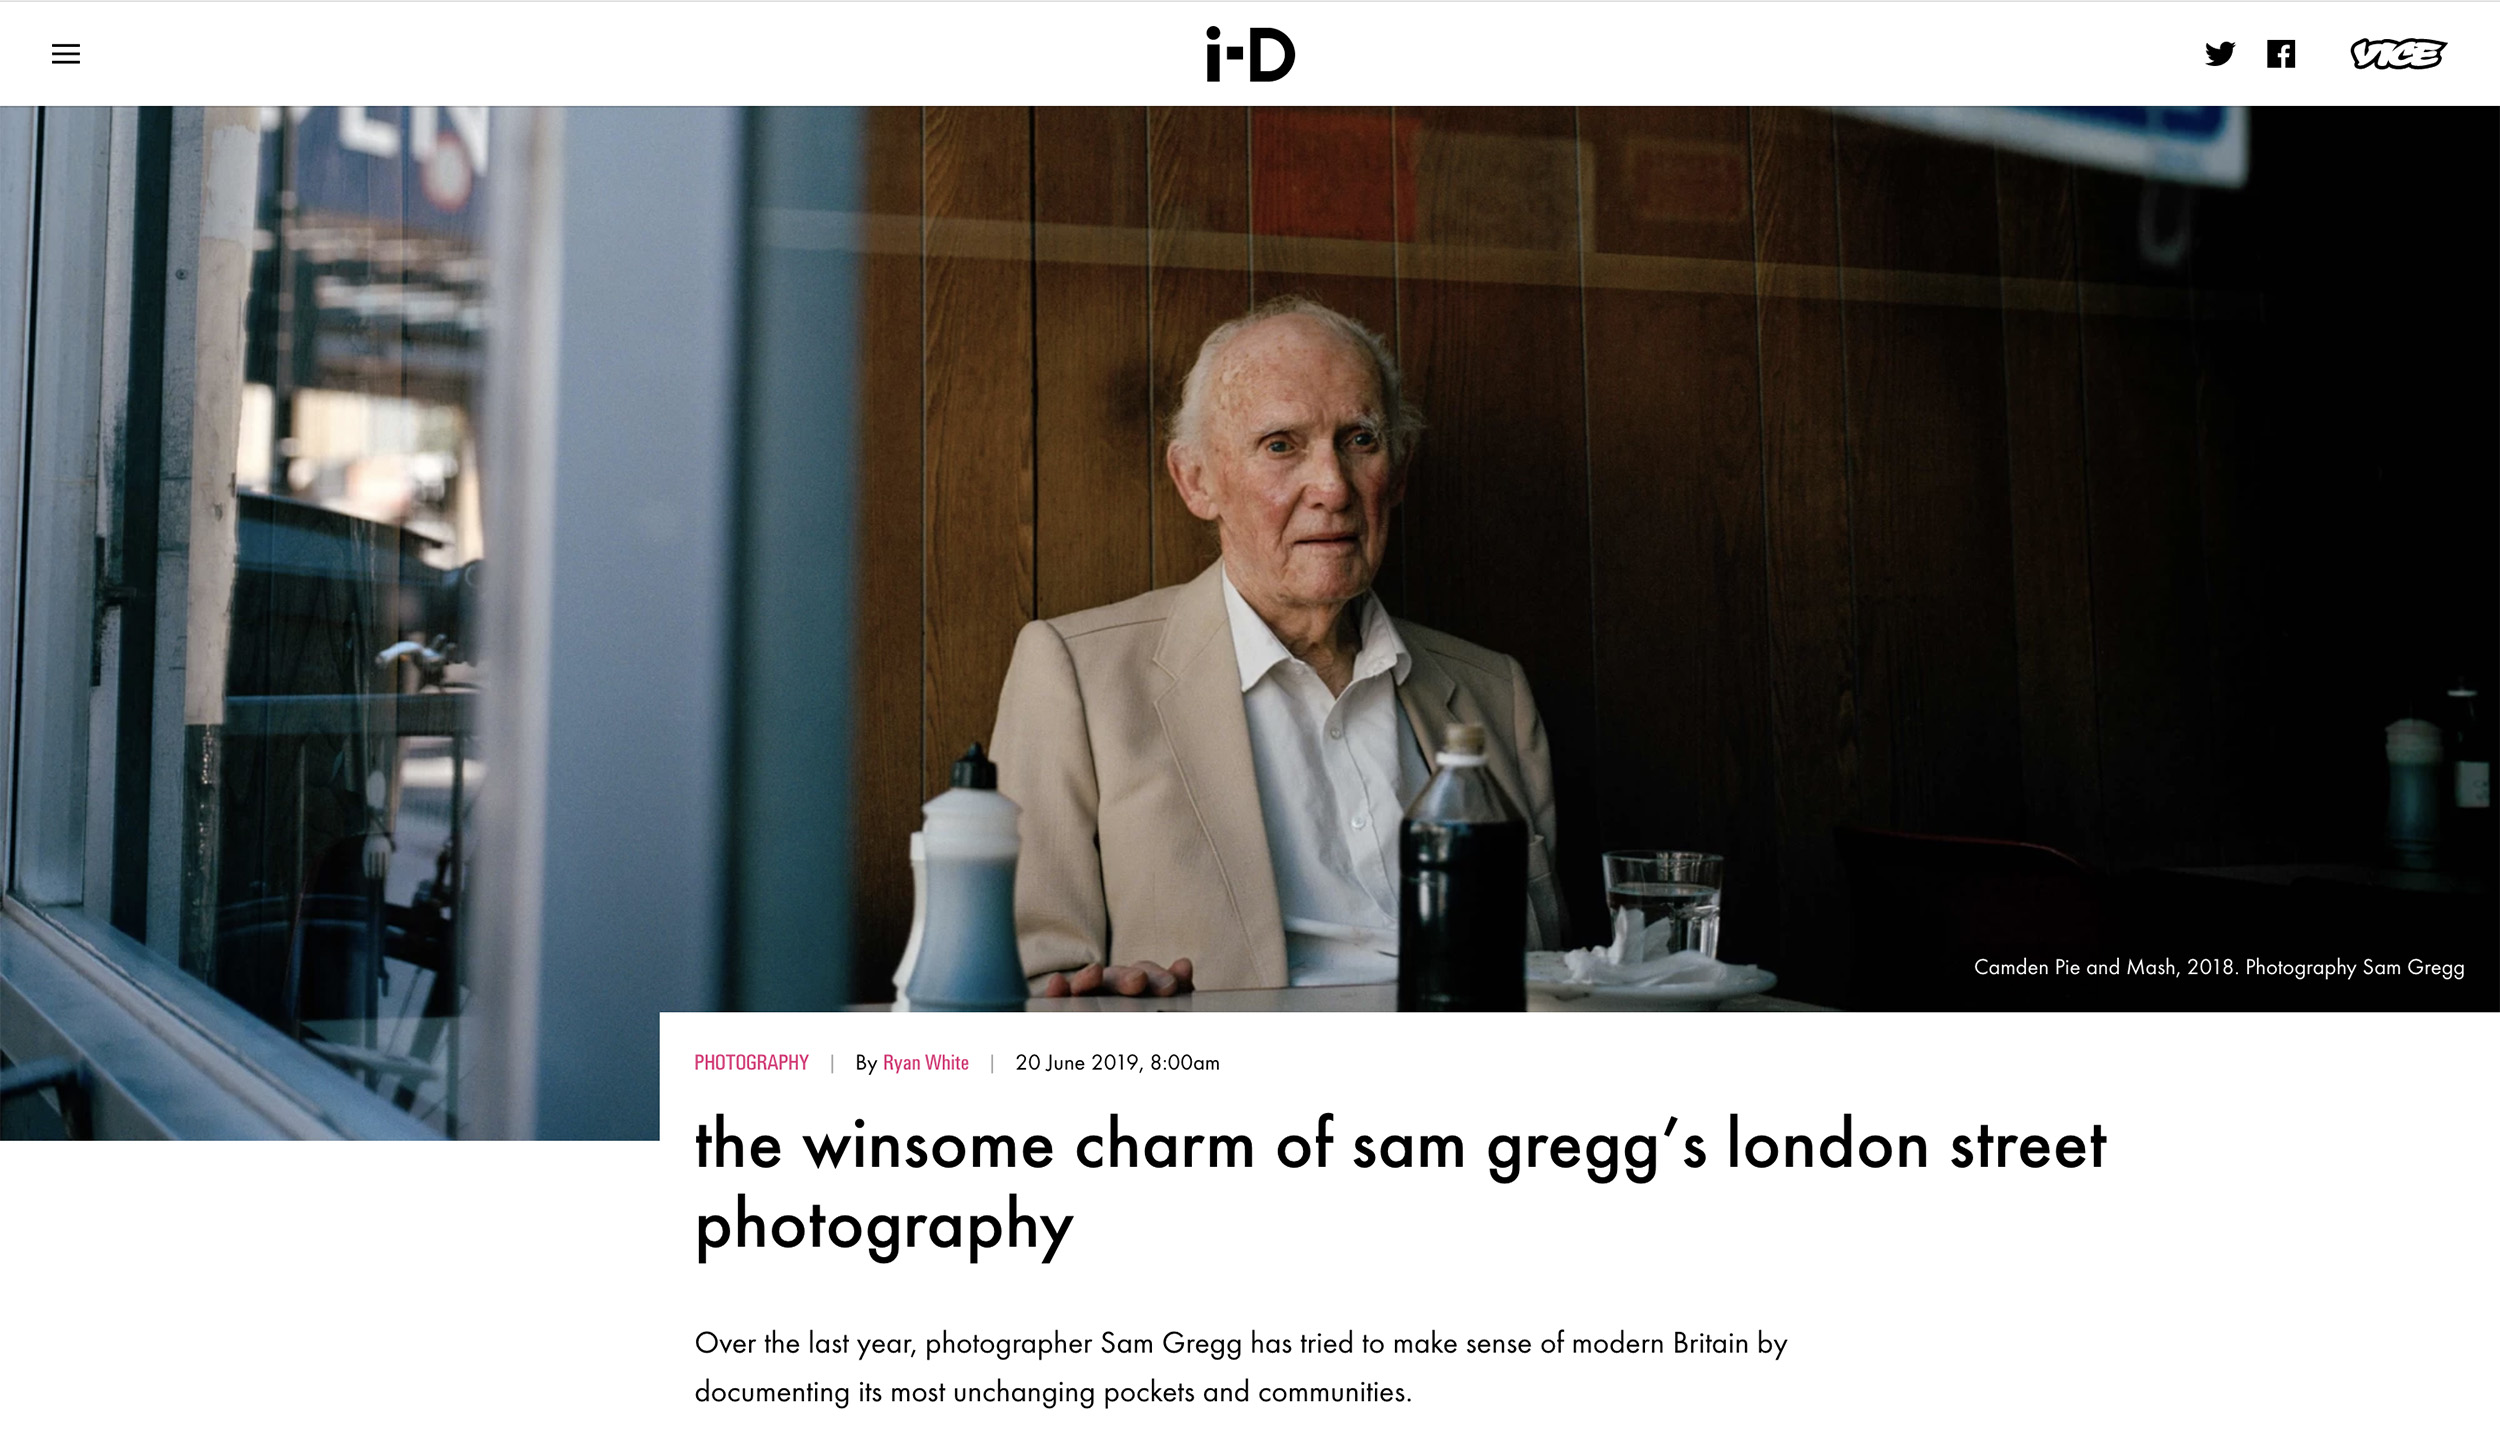 i-D-magazine-vice-sam-gregg-blighty-london-photography-photographer-1.jpg